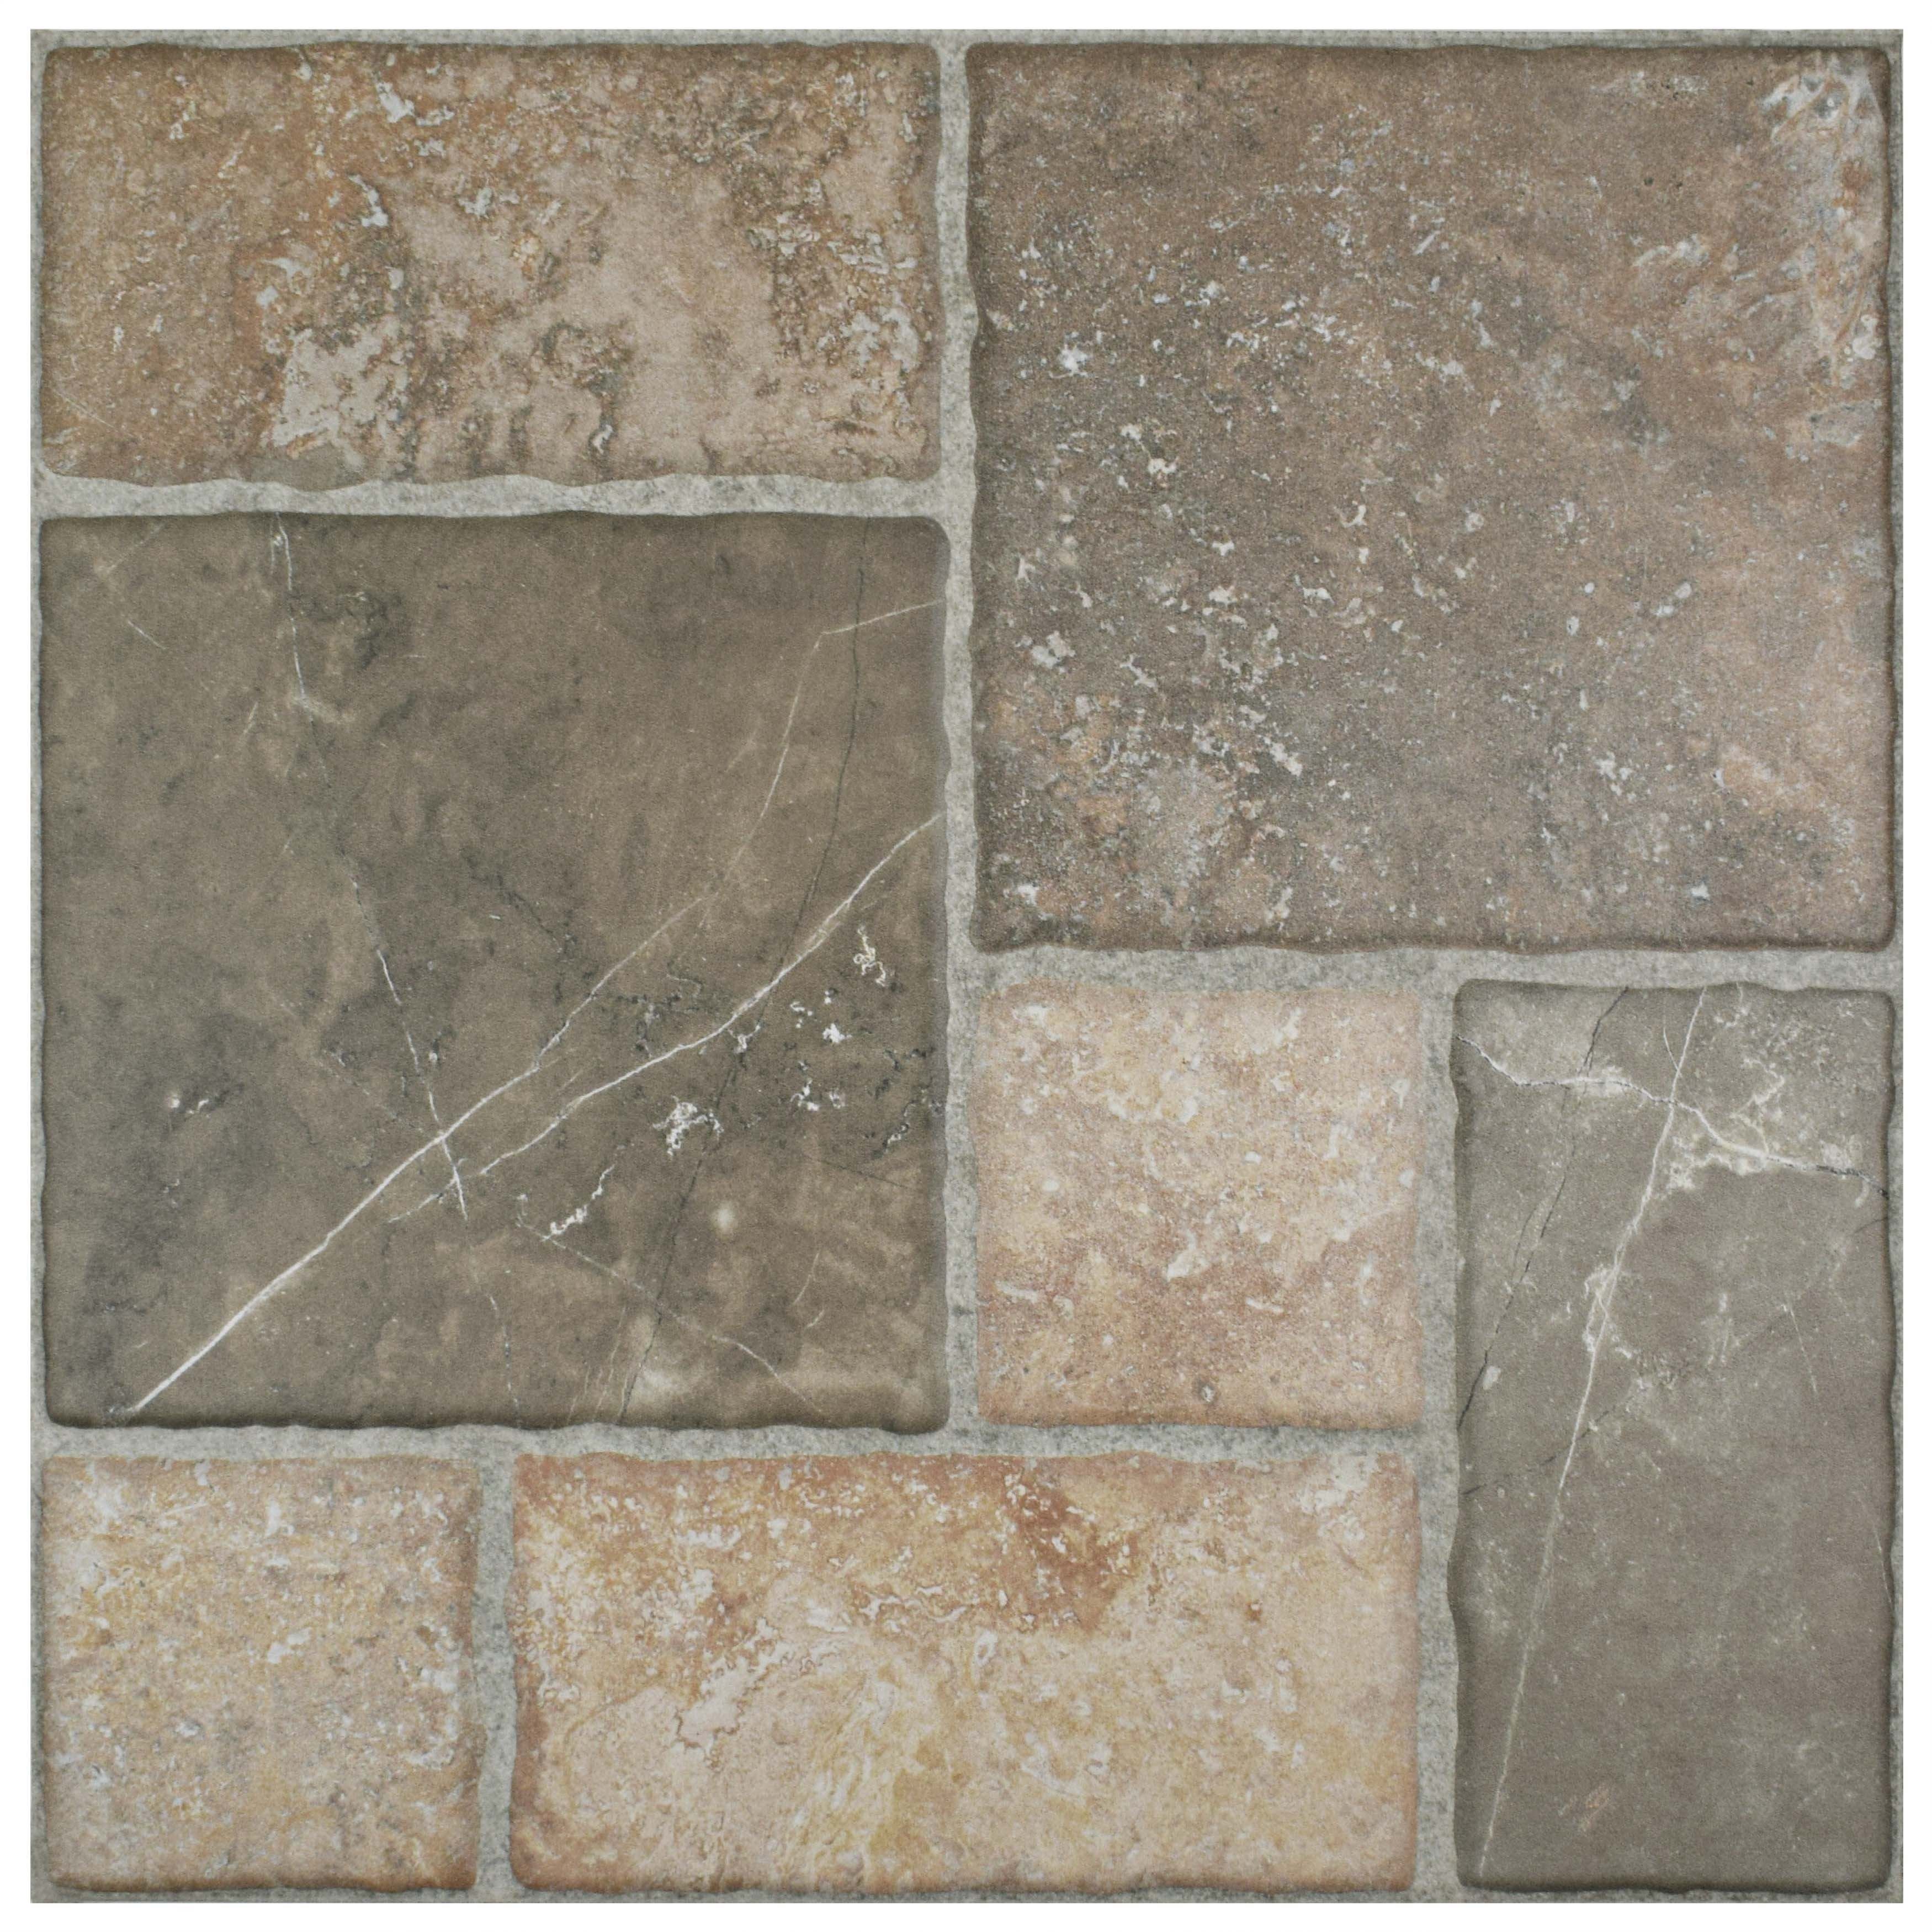 Shop Somertile 1775x1775 Inch Salvador Magma Ceramic Floor And